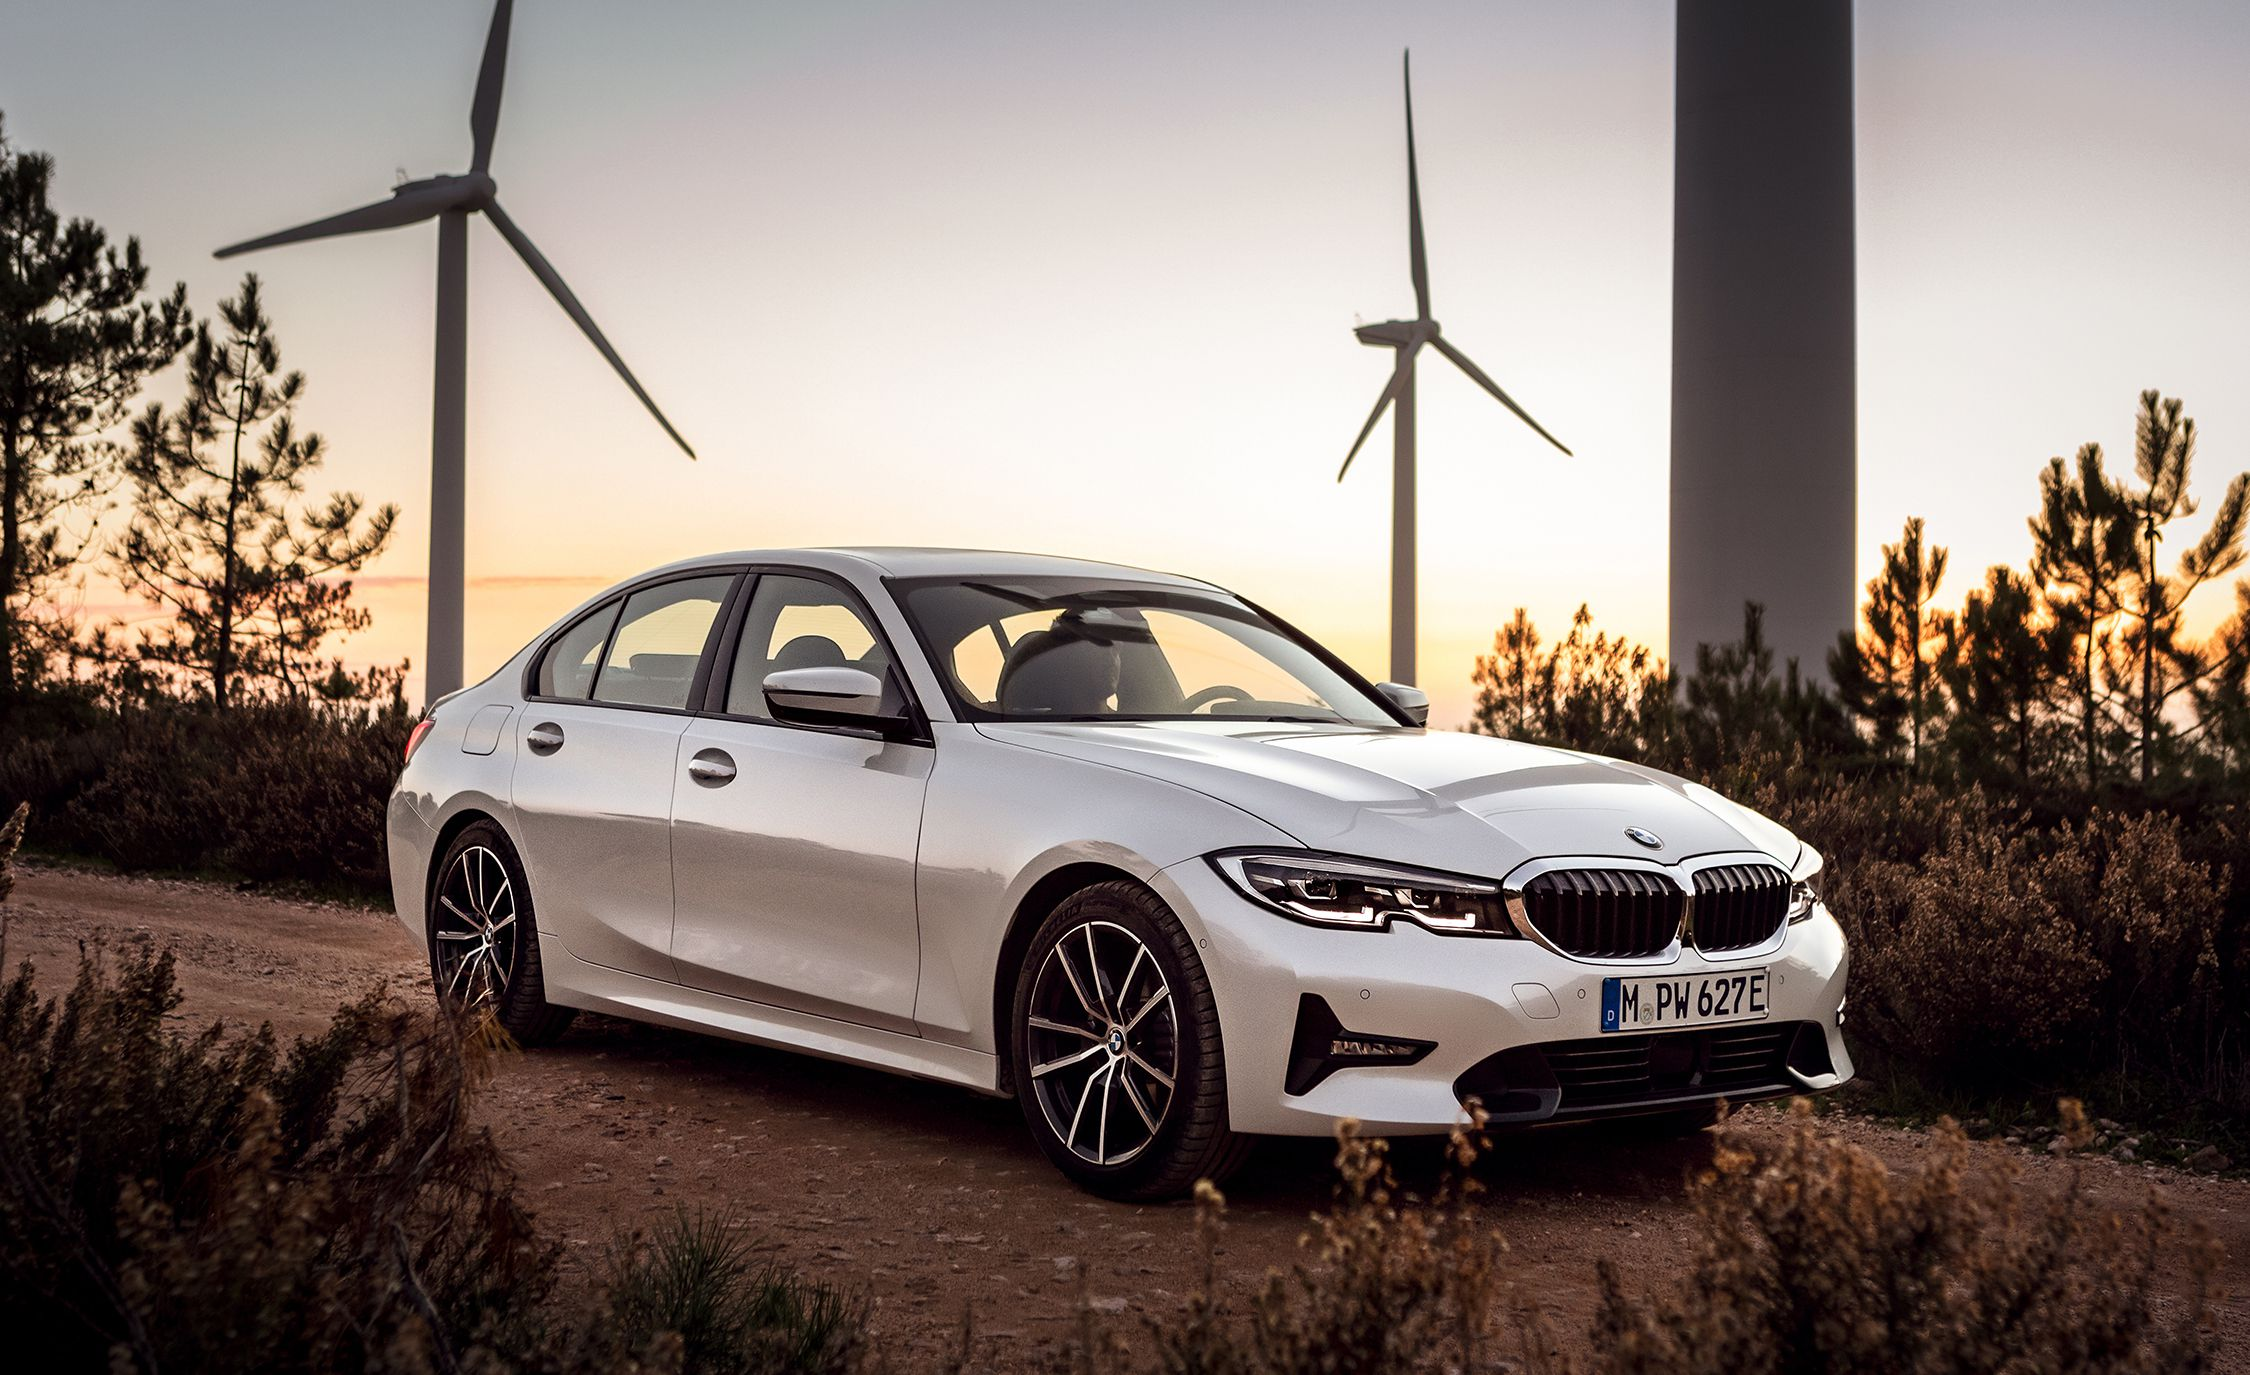 59 The Best 2020 BMW 3 Series Edrive Phev Price and Review